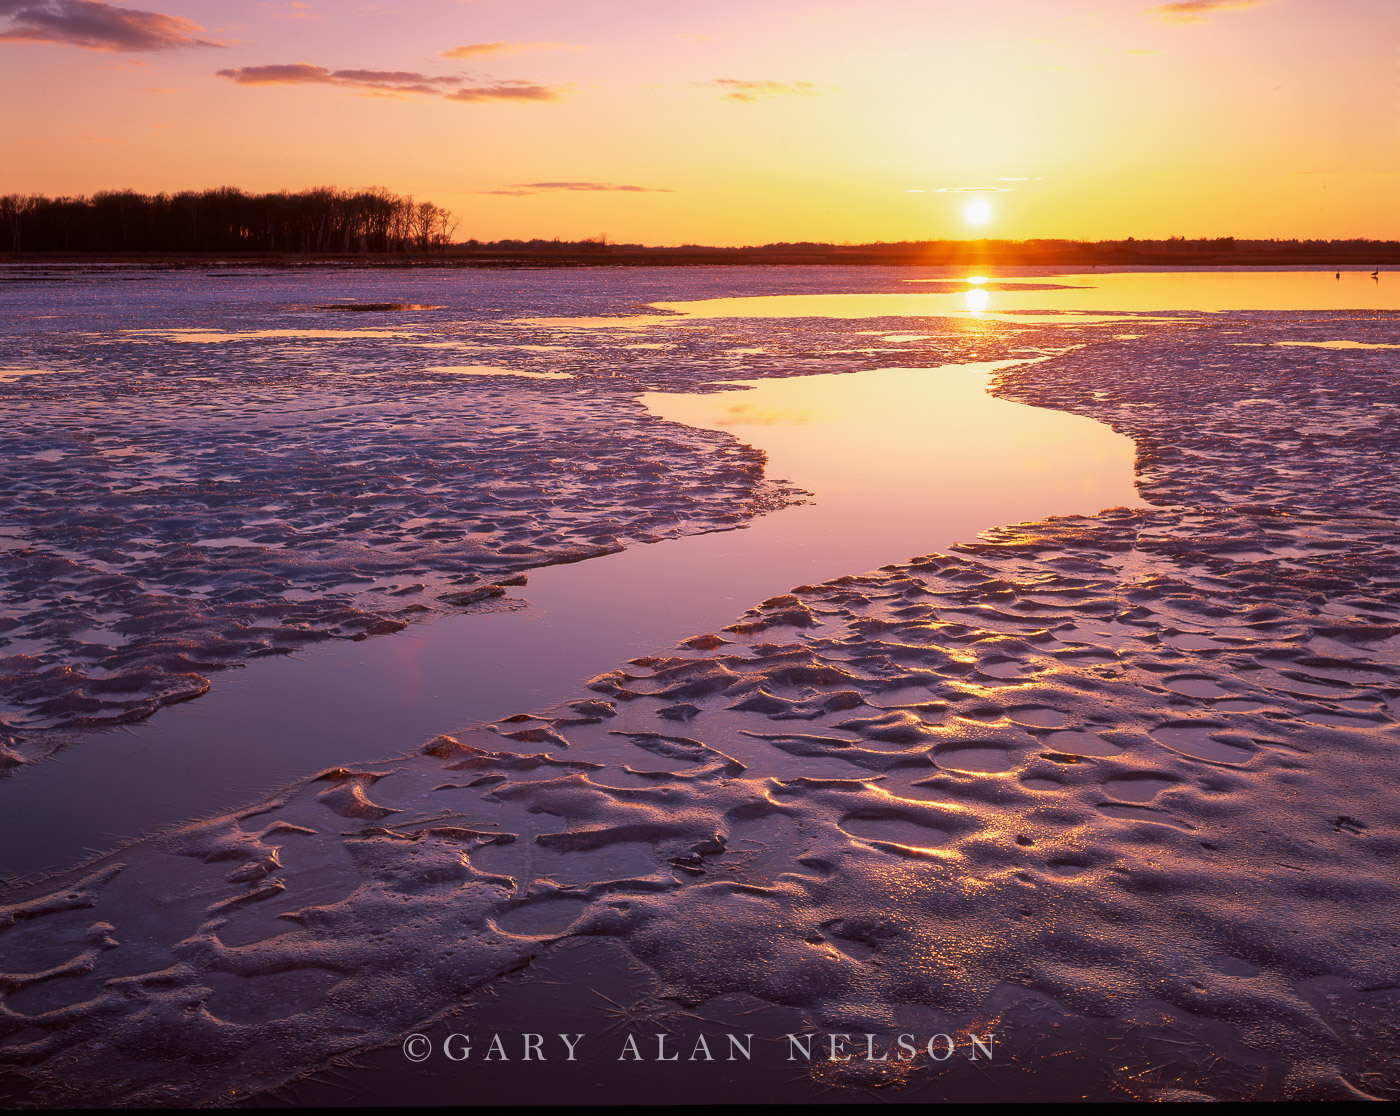 ice, carlos avery, minnesota, photo